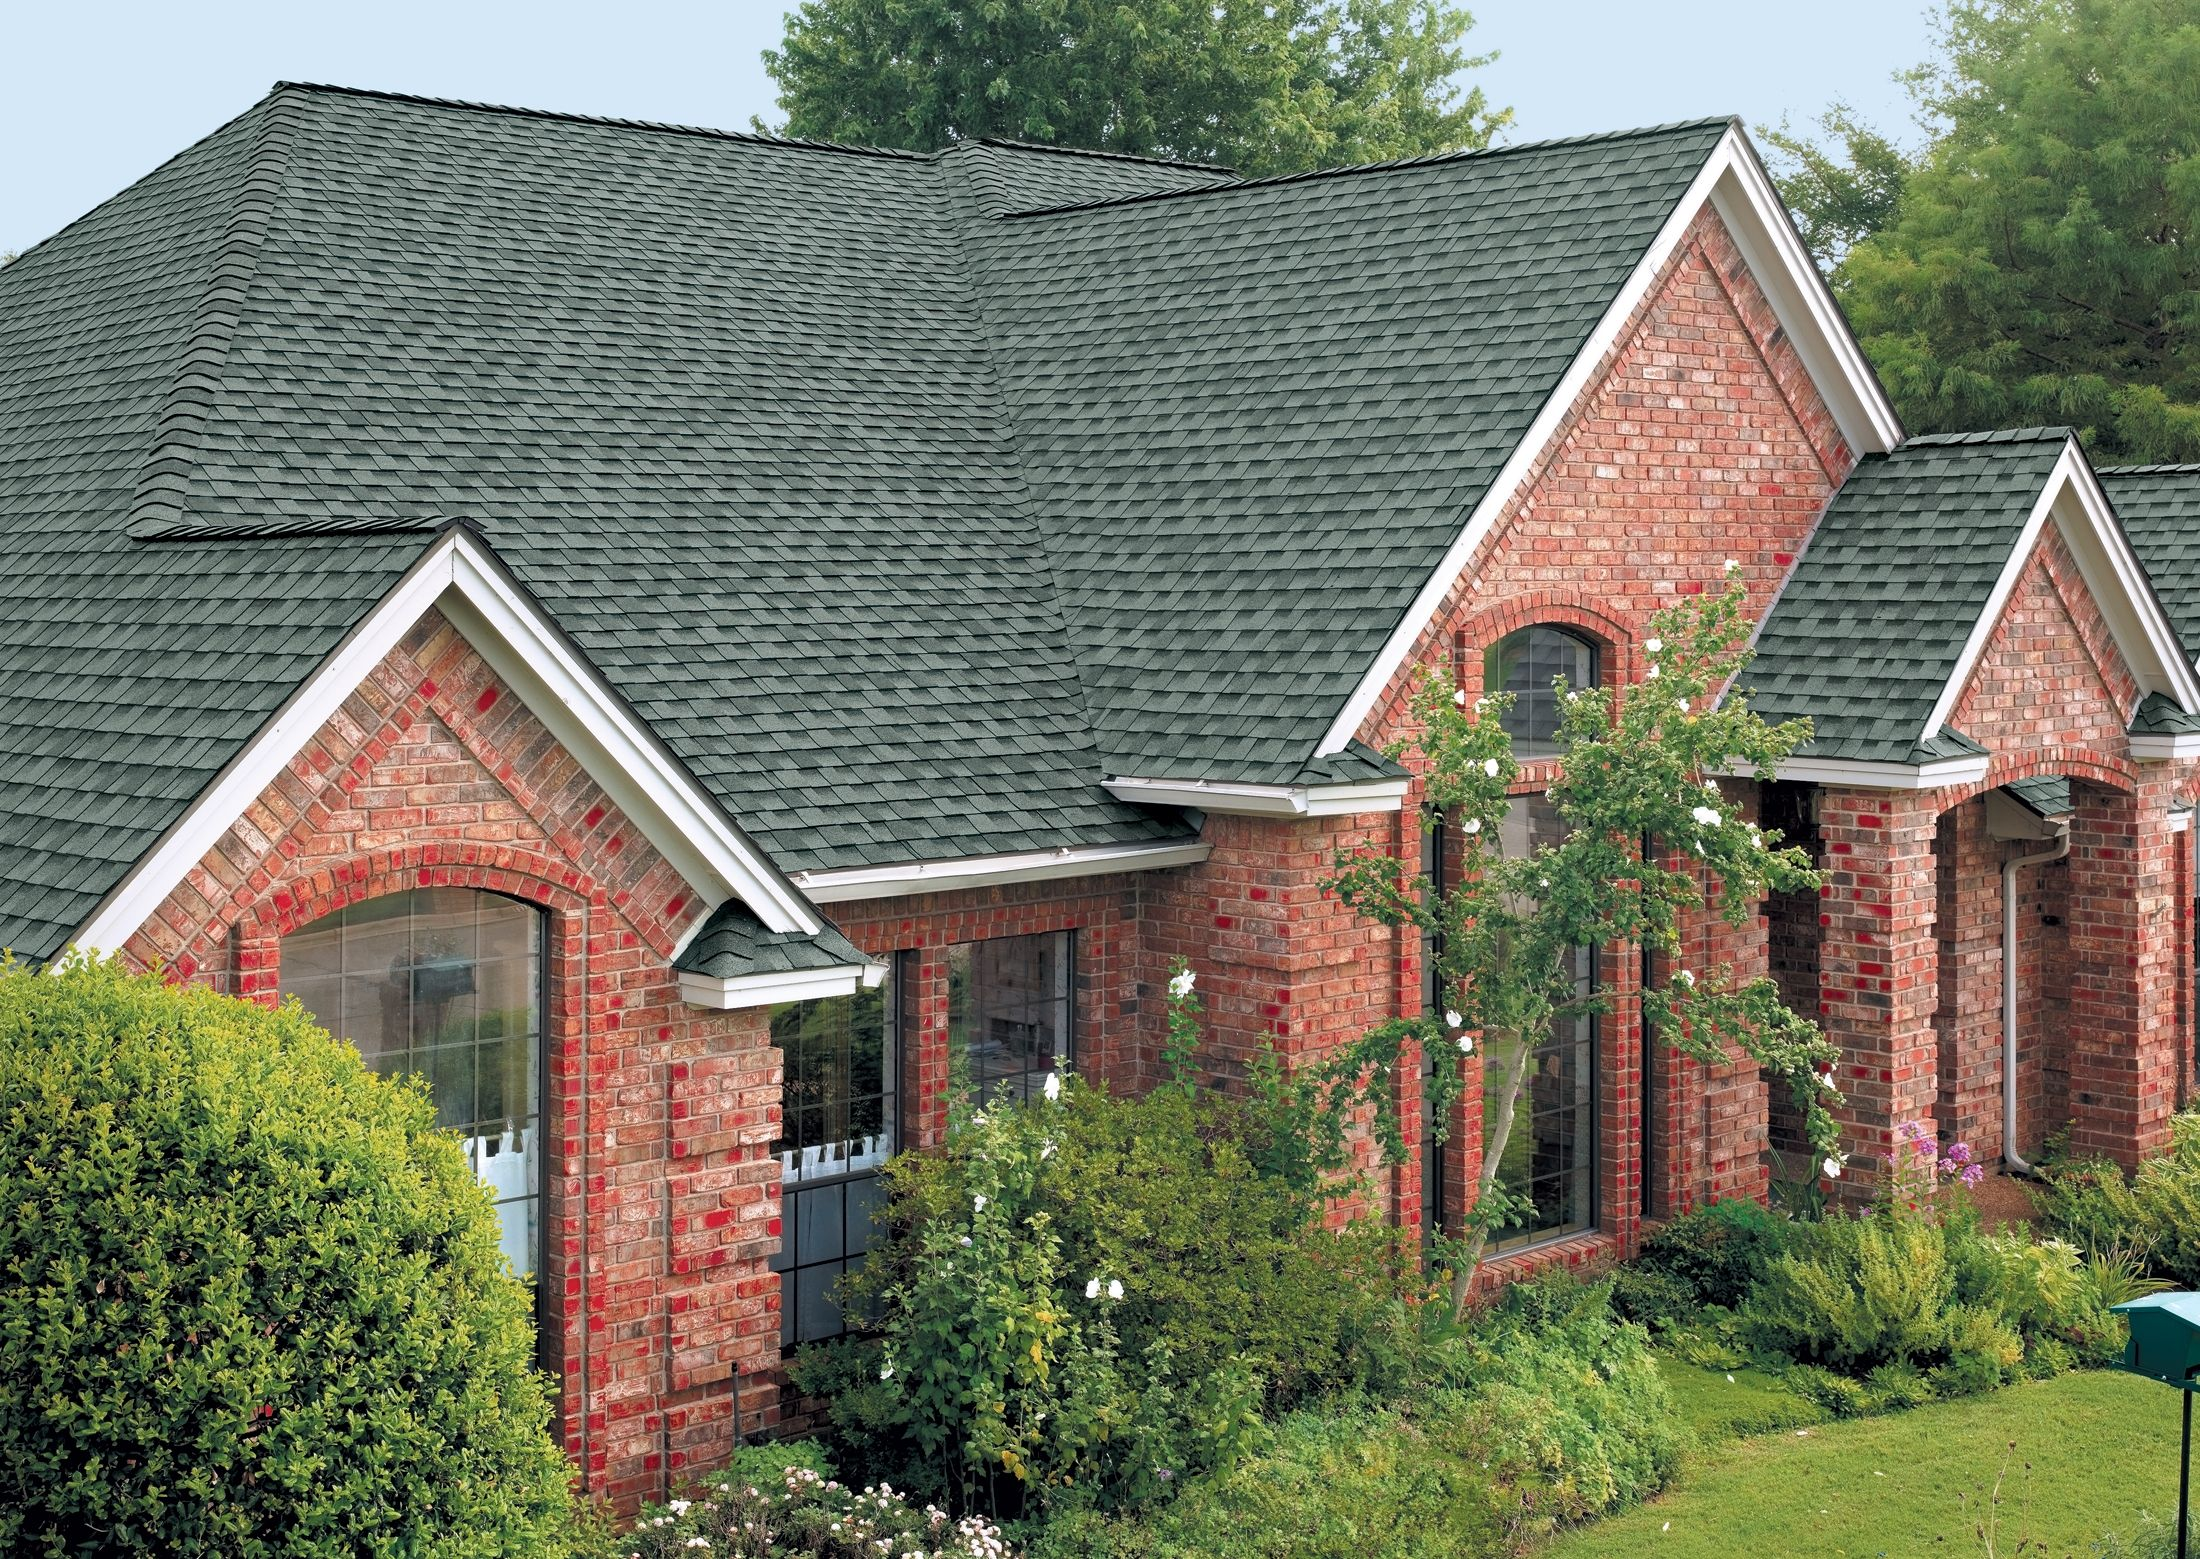 Quality roofing job begins before the shingles go on home remodeling - Gaf Timberline Hd Shingles In Slate For More Roofing Options Visit Http